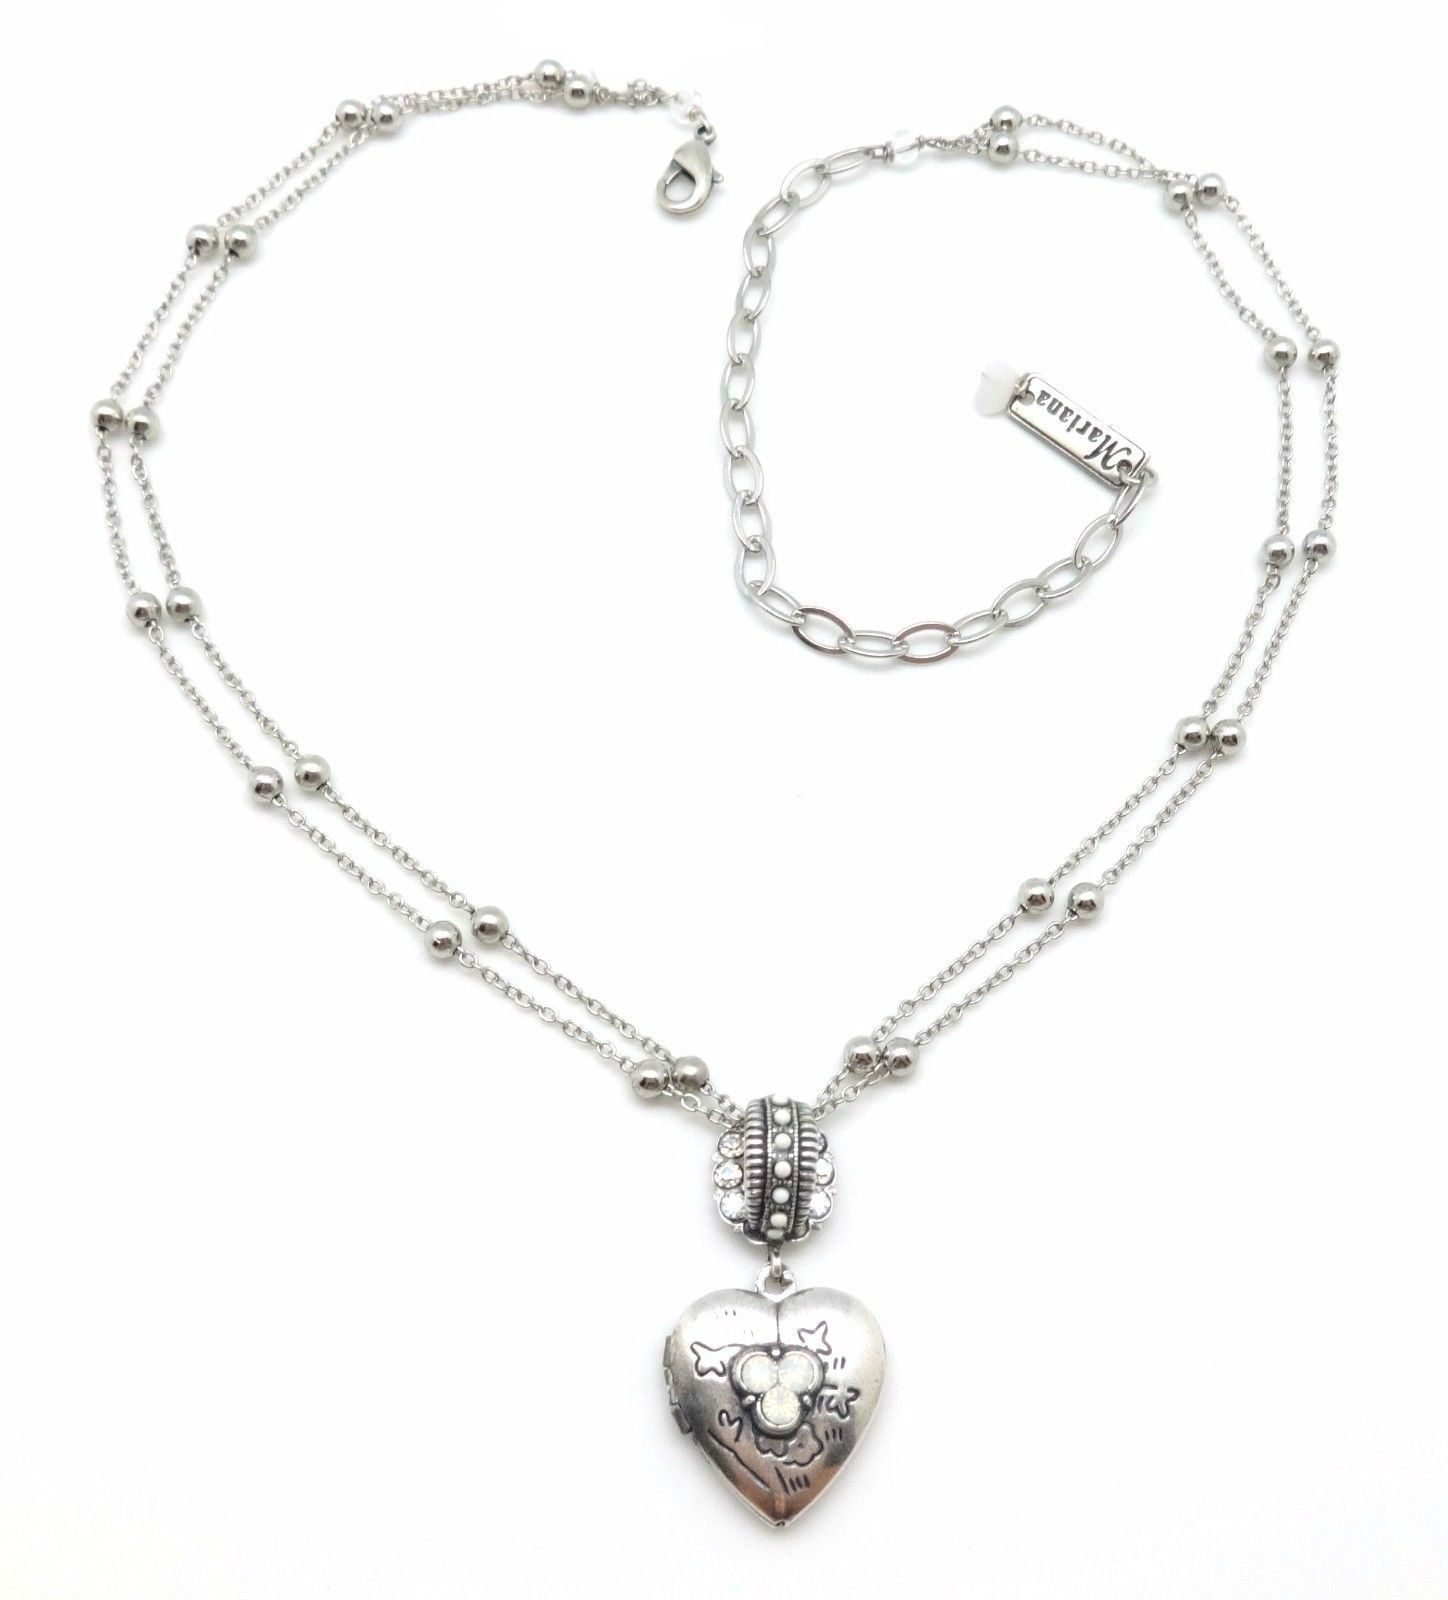 """Mariana Silver Plated Forever White Swarovski Heart Locket Necklace 5087. Silver Plating over Brass, Nickel Free / Hypo-Allergenic. Beautiful mix of Swarosvki Crystals in White Opalescent, Crystal Moonlight and White Opaque - Color 5087 """"Forever"""". Adjustable Silver Plated Double Strand Link Chain is Approximately 15"""" - 19"""" in length. Heart Locket is Approximately 3/4"""" wide by 1 1/2"""" long, removable from chain. Handmade, Lifetime Guarantee comes in Gift Box with Mariana Storage Pouch and..."""